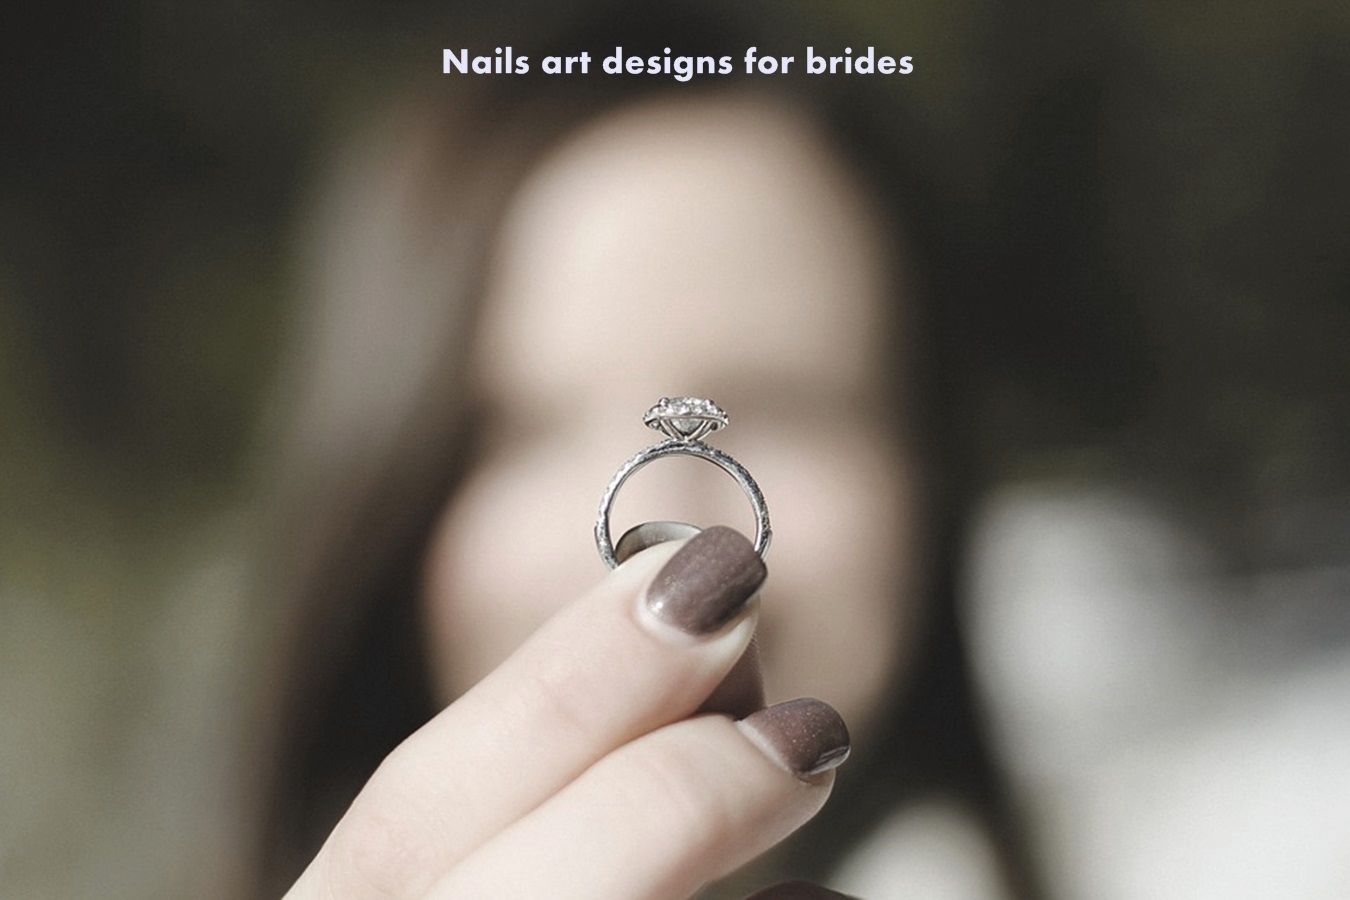 Nails art designs for brides and wedding ocation bridal nails